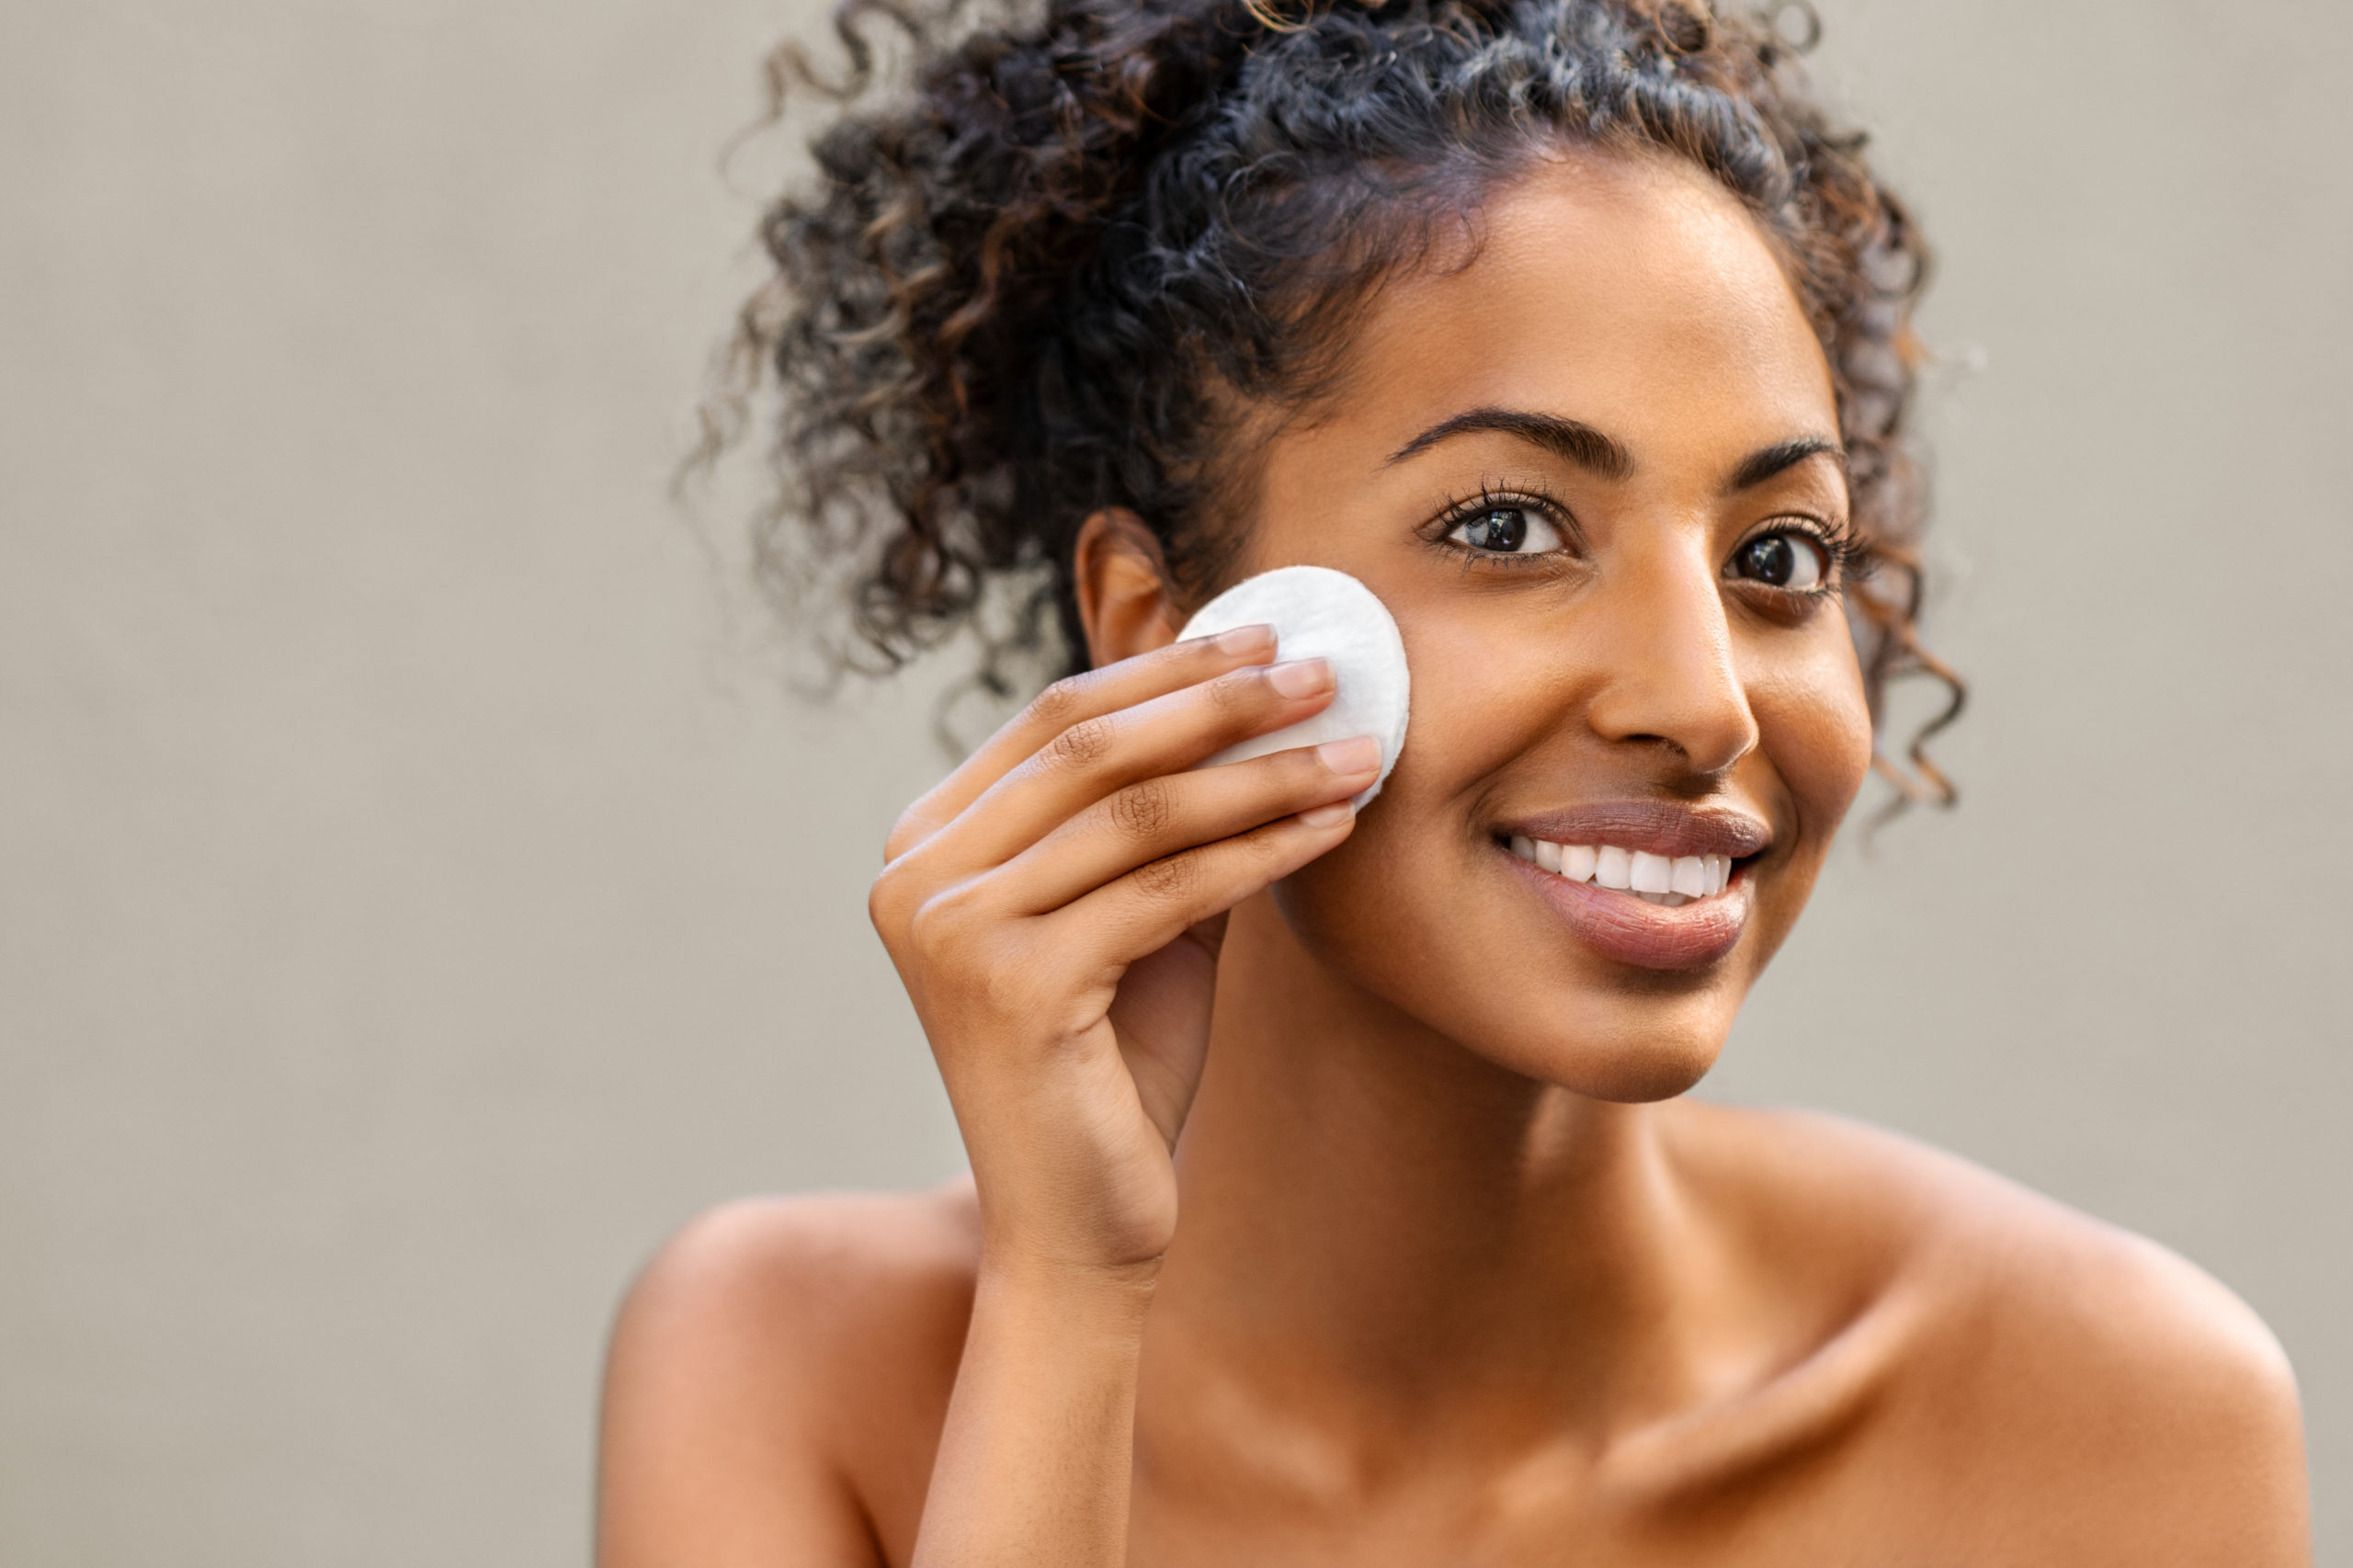 The first step is removing make-up, dirt and oil